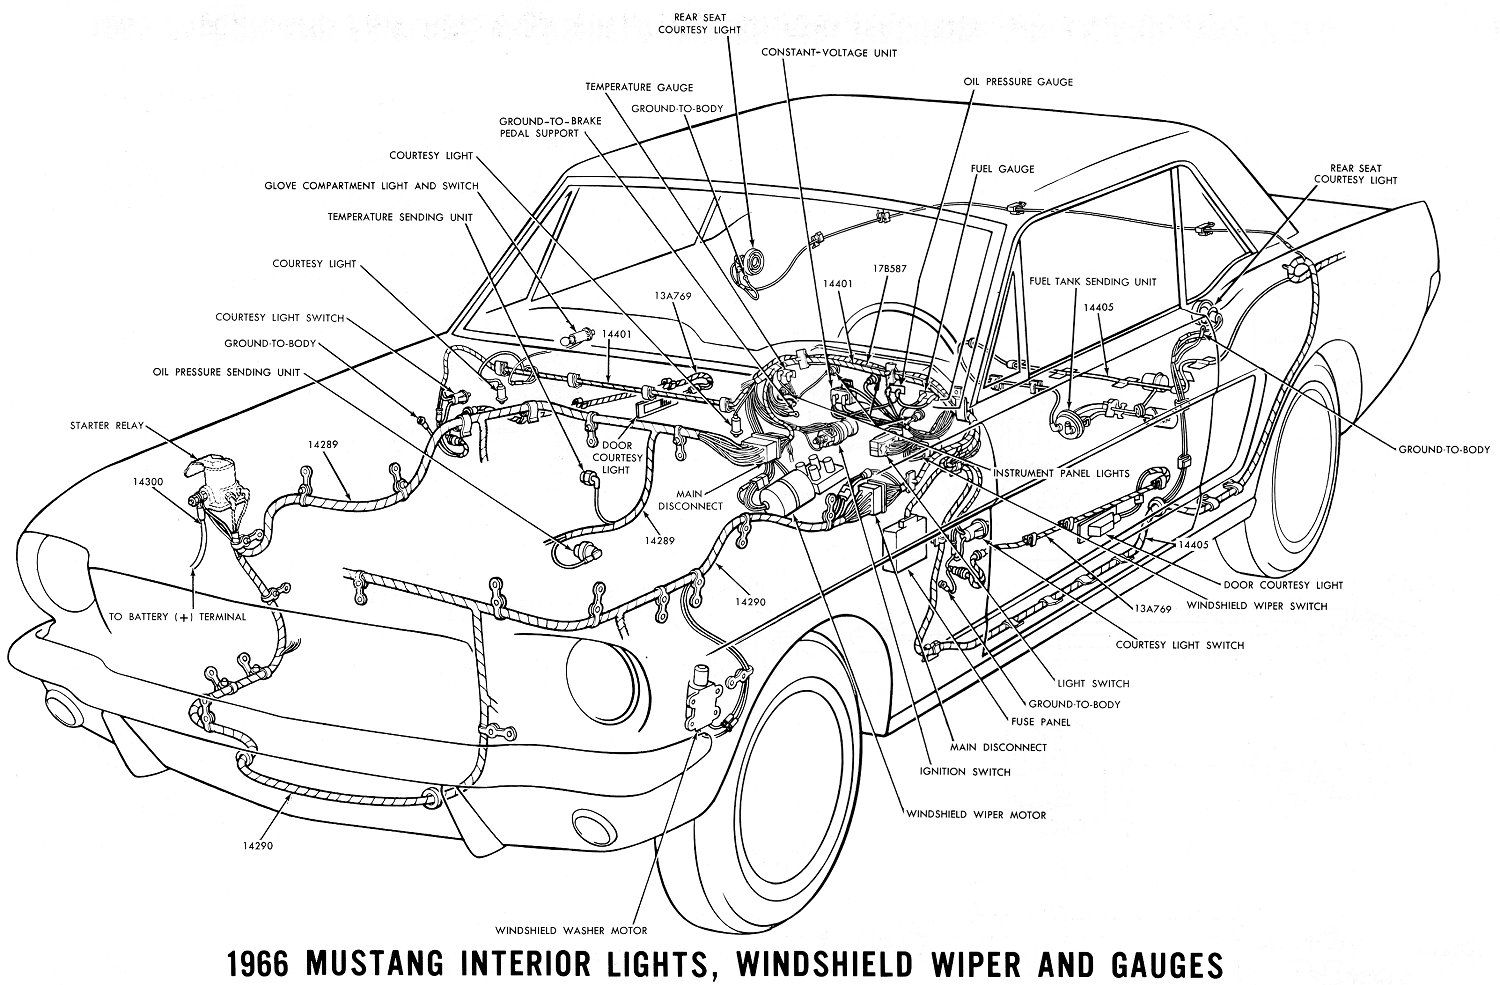 1966 mustang courtesy light wiring diagram